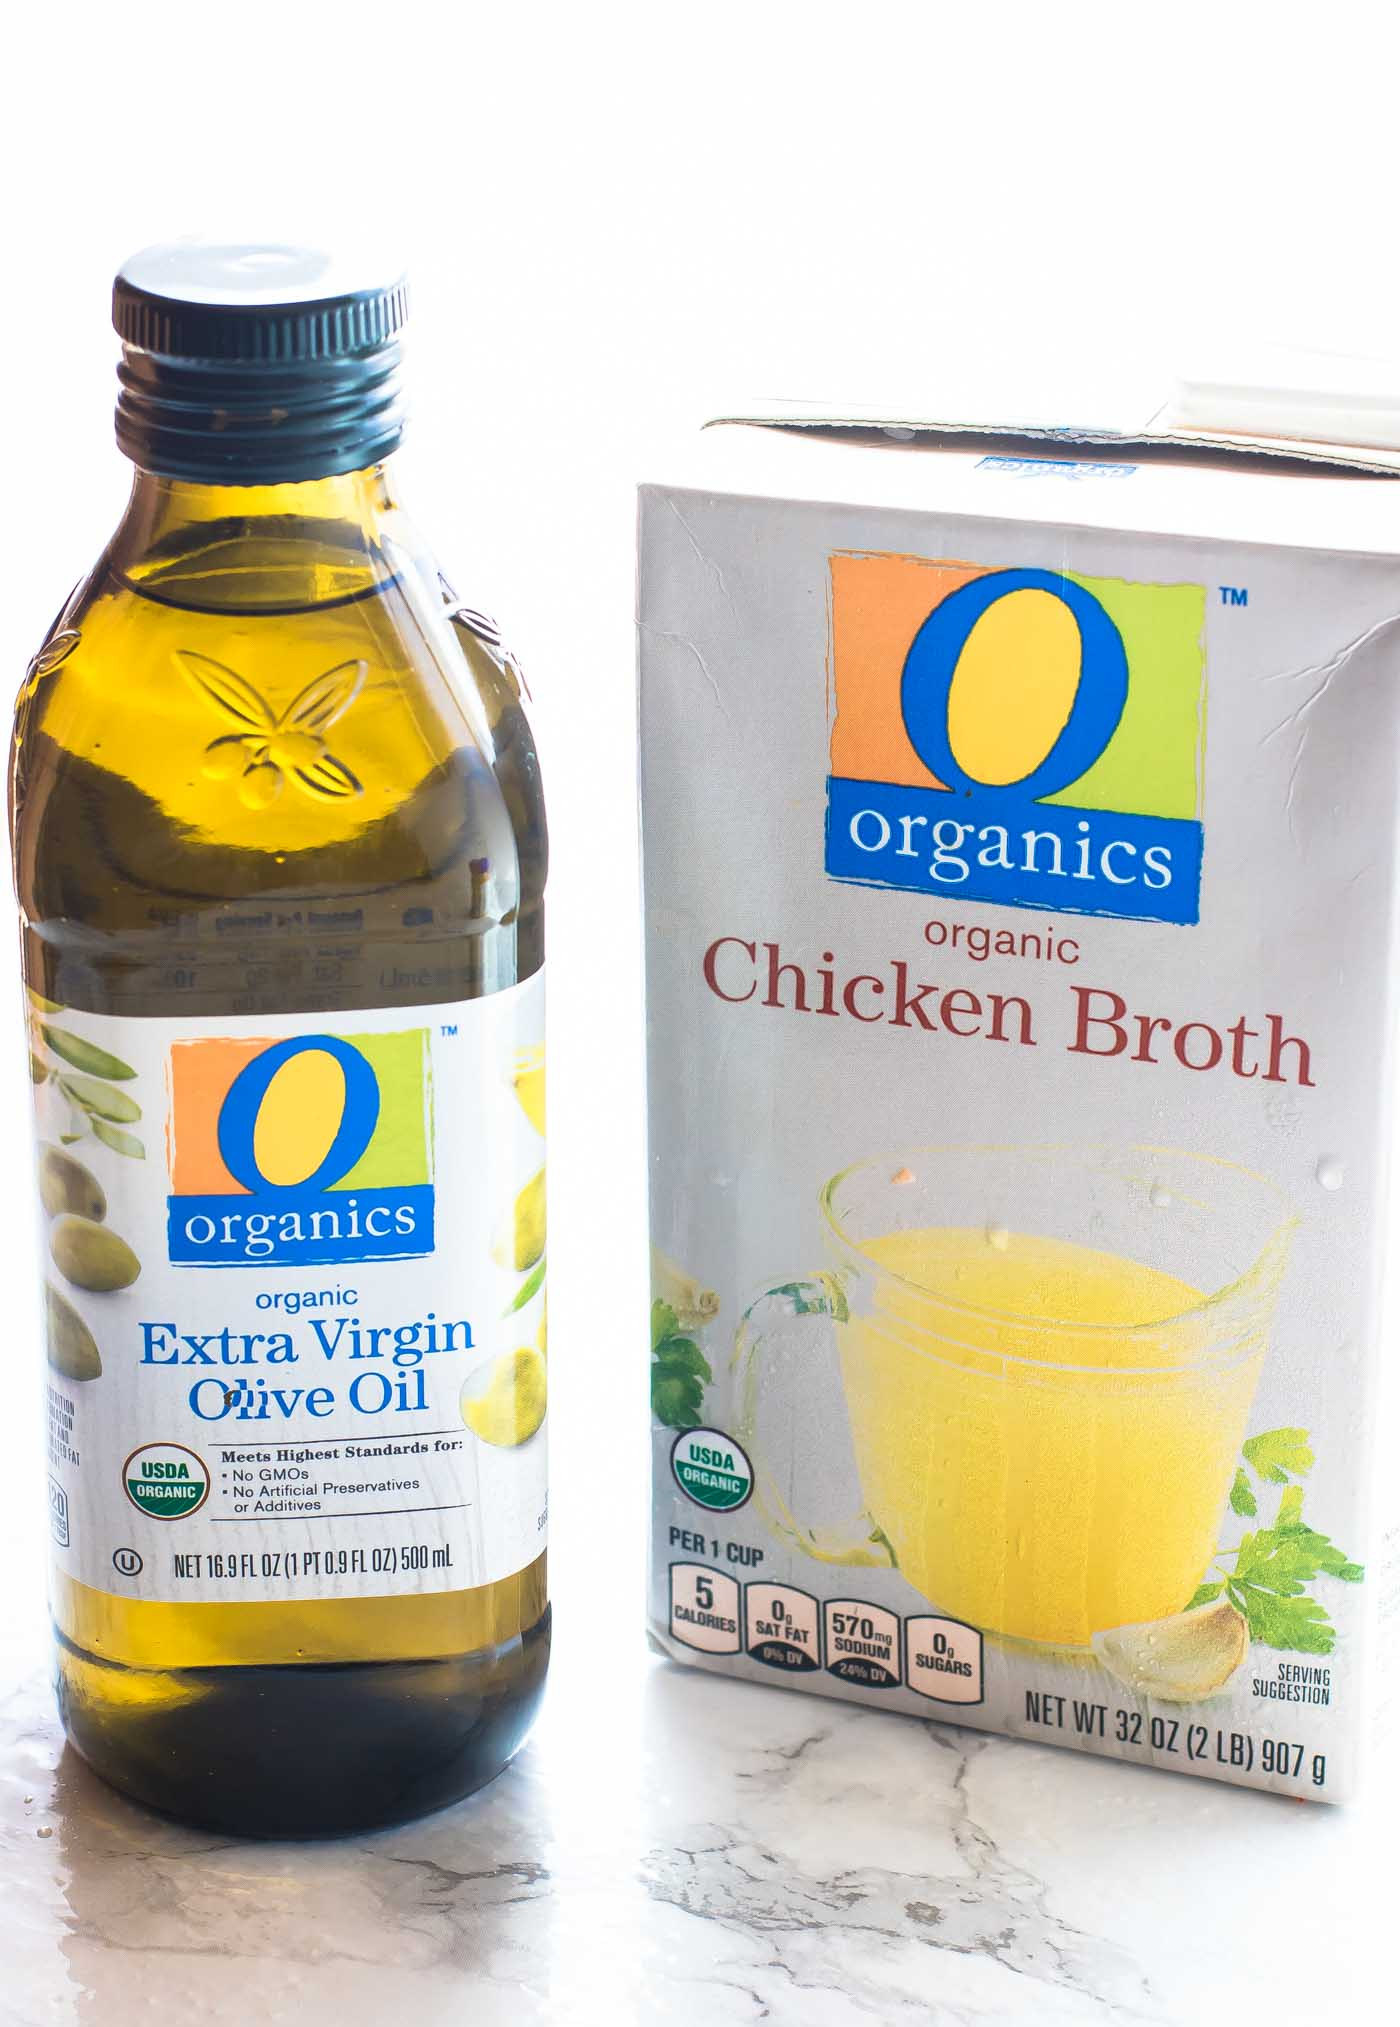 O Organics brand olive oil and chicken broth